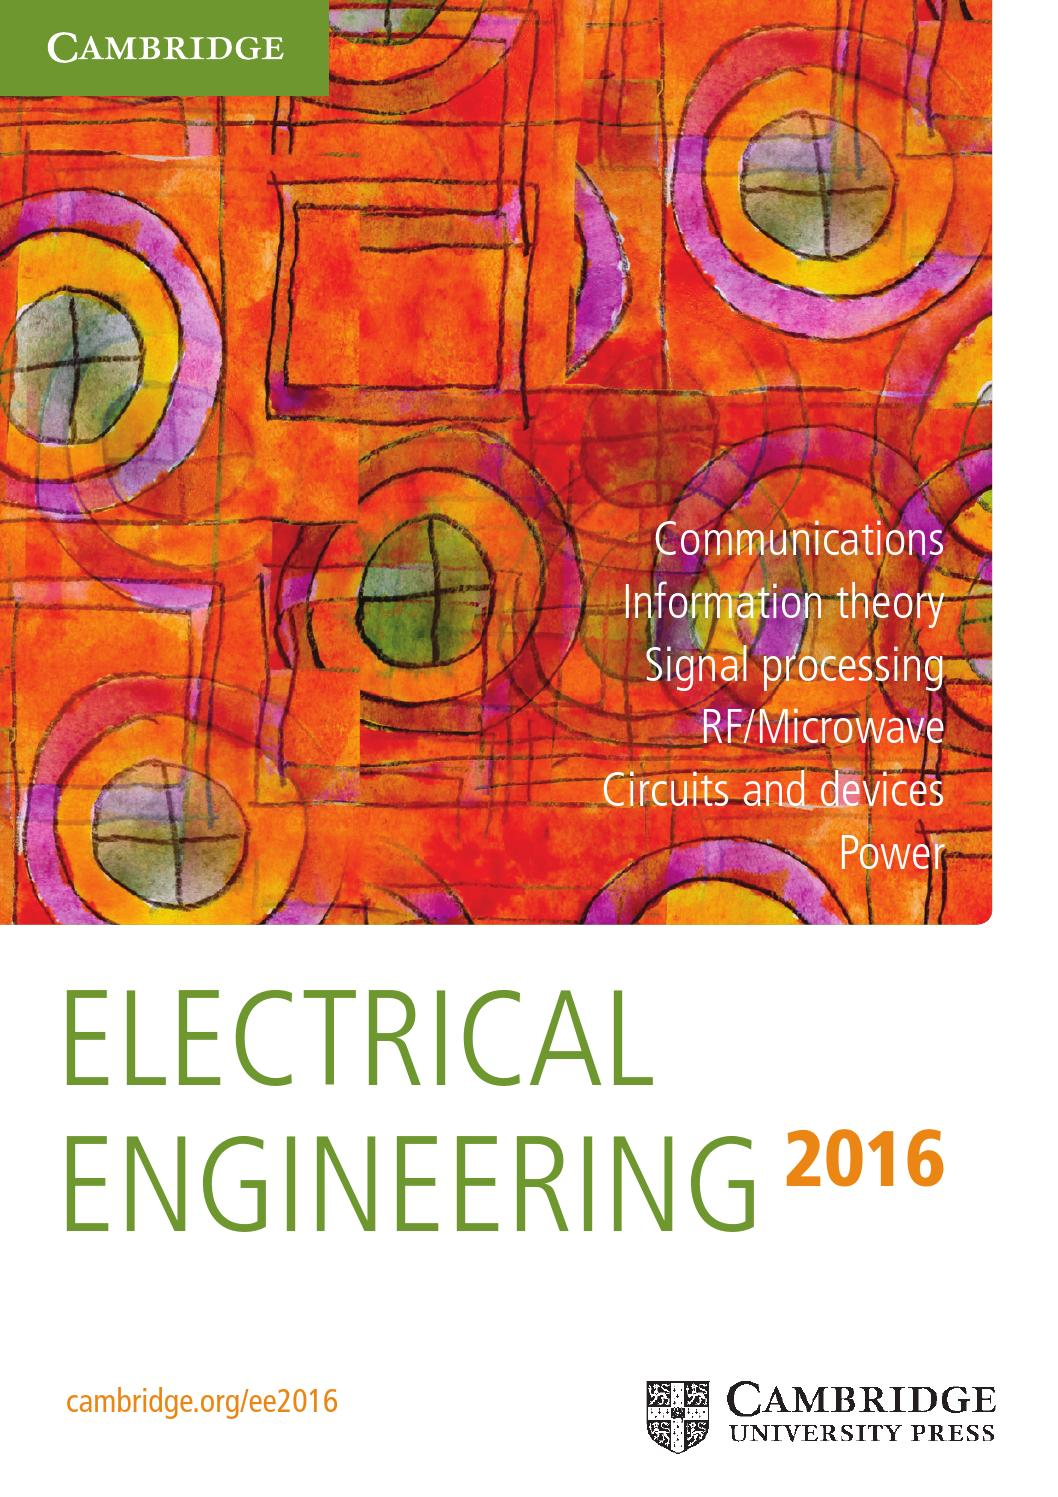 Electrical engineering catalogue 2016 by cambridge university press electrical engineering catalogue 2016 by cambridge university press issuu fandeluxe Gallery